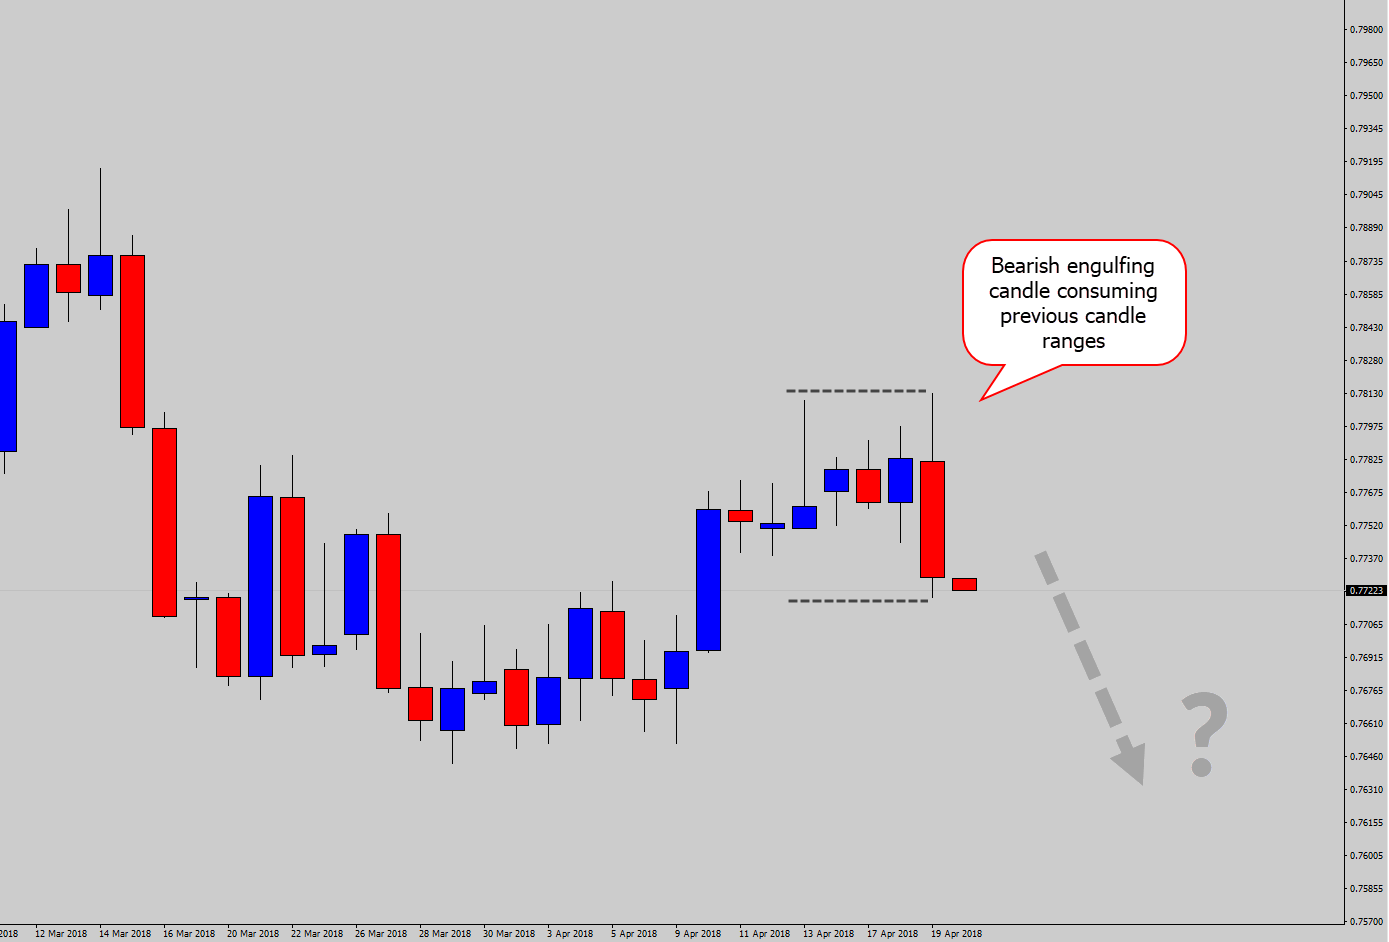 bearish engulfing example